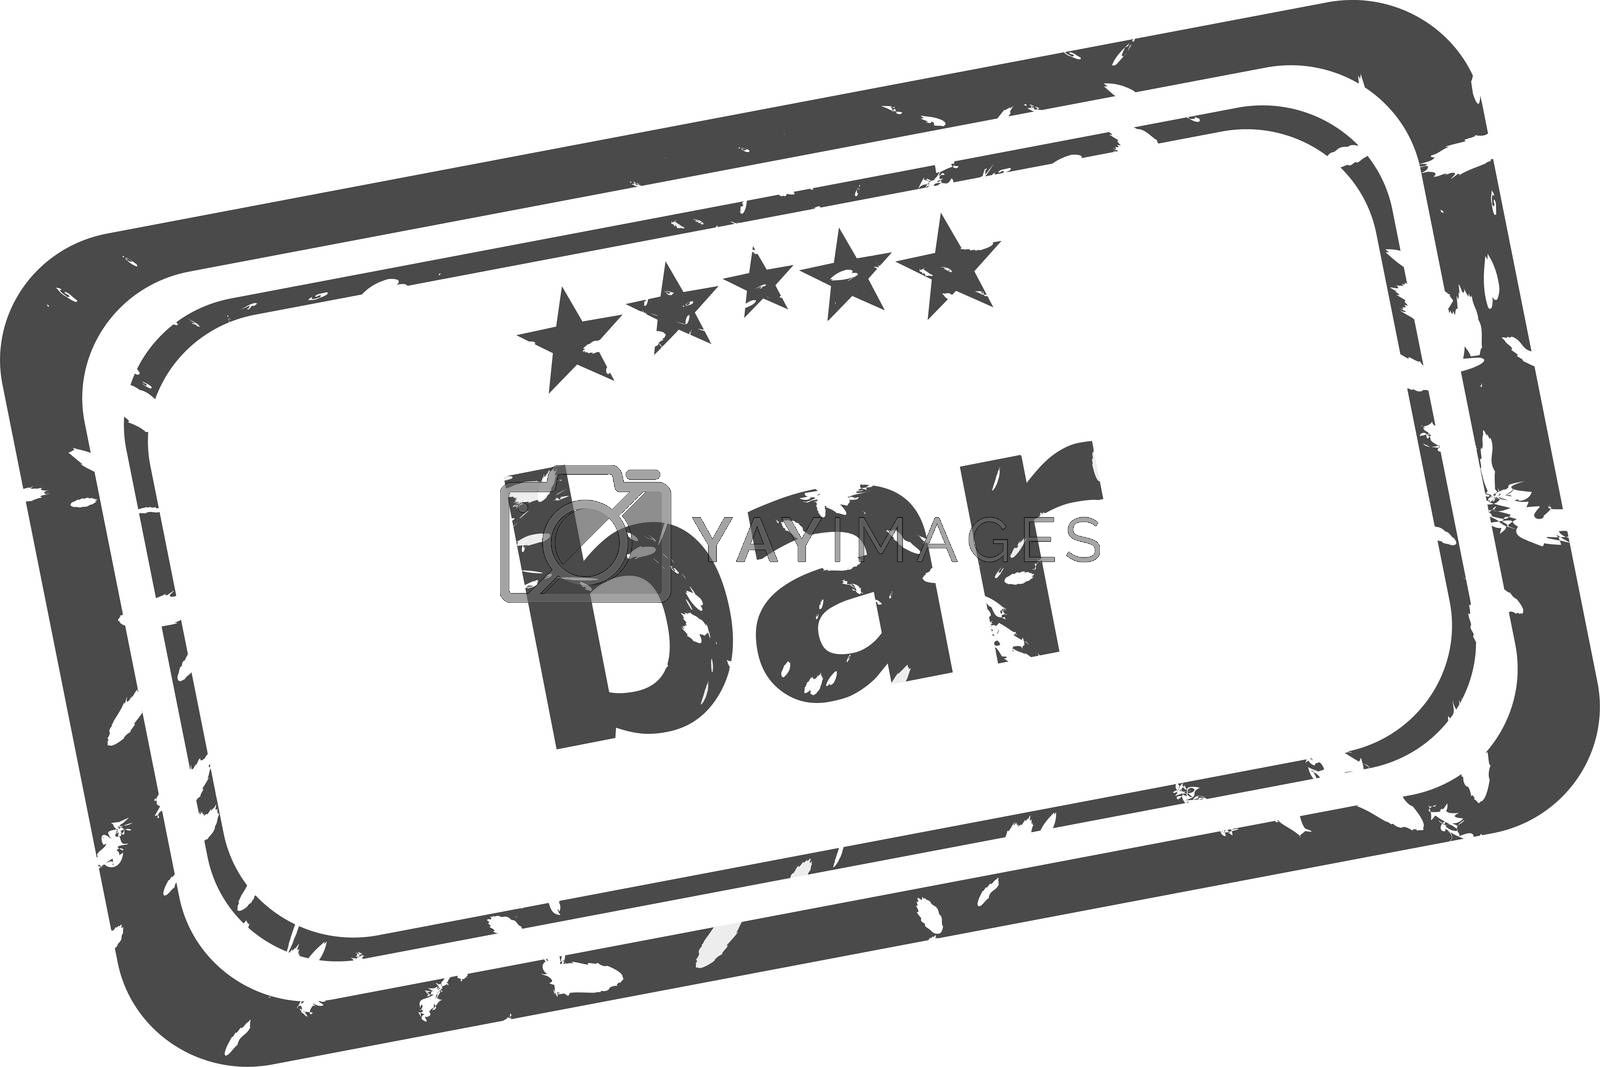 bar grunge rubber stamp isolated on white background